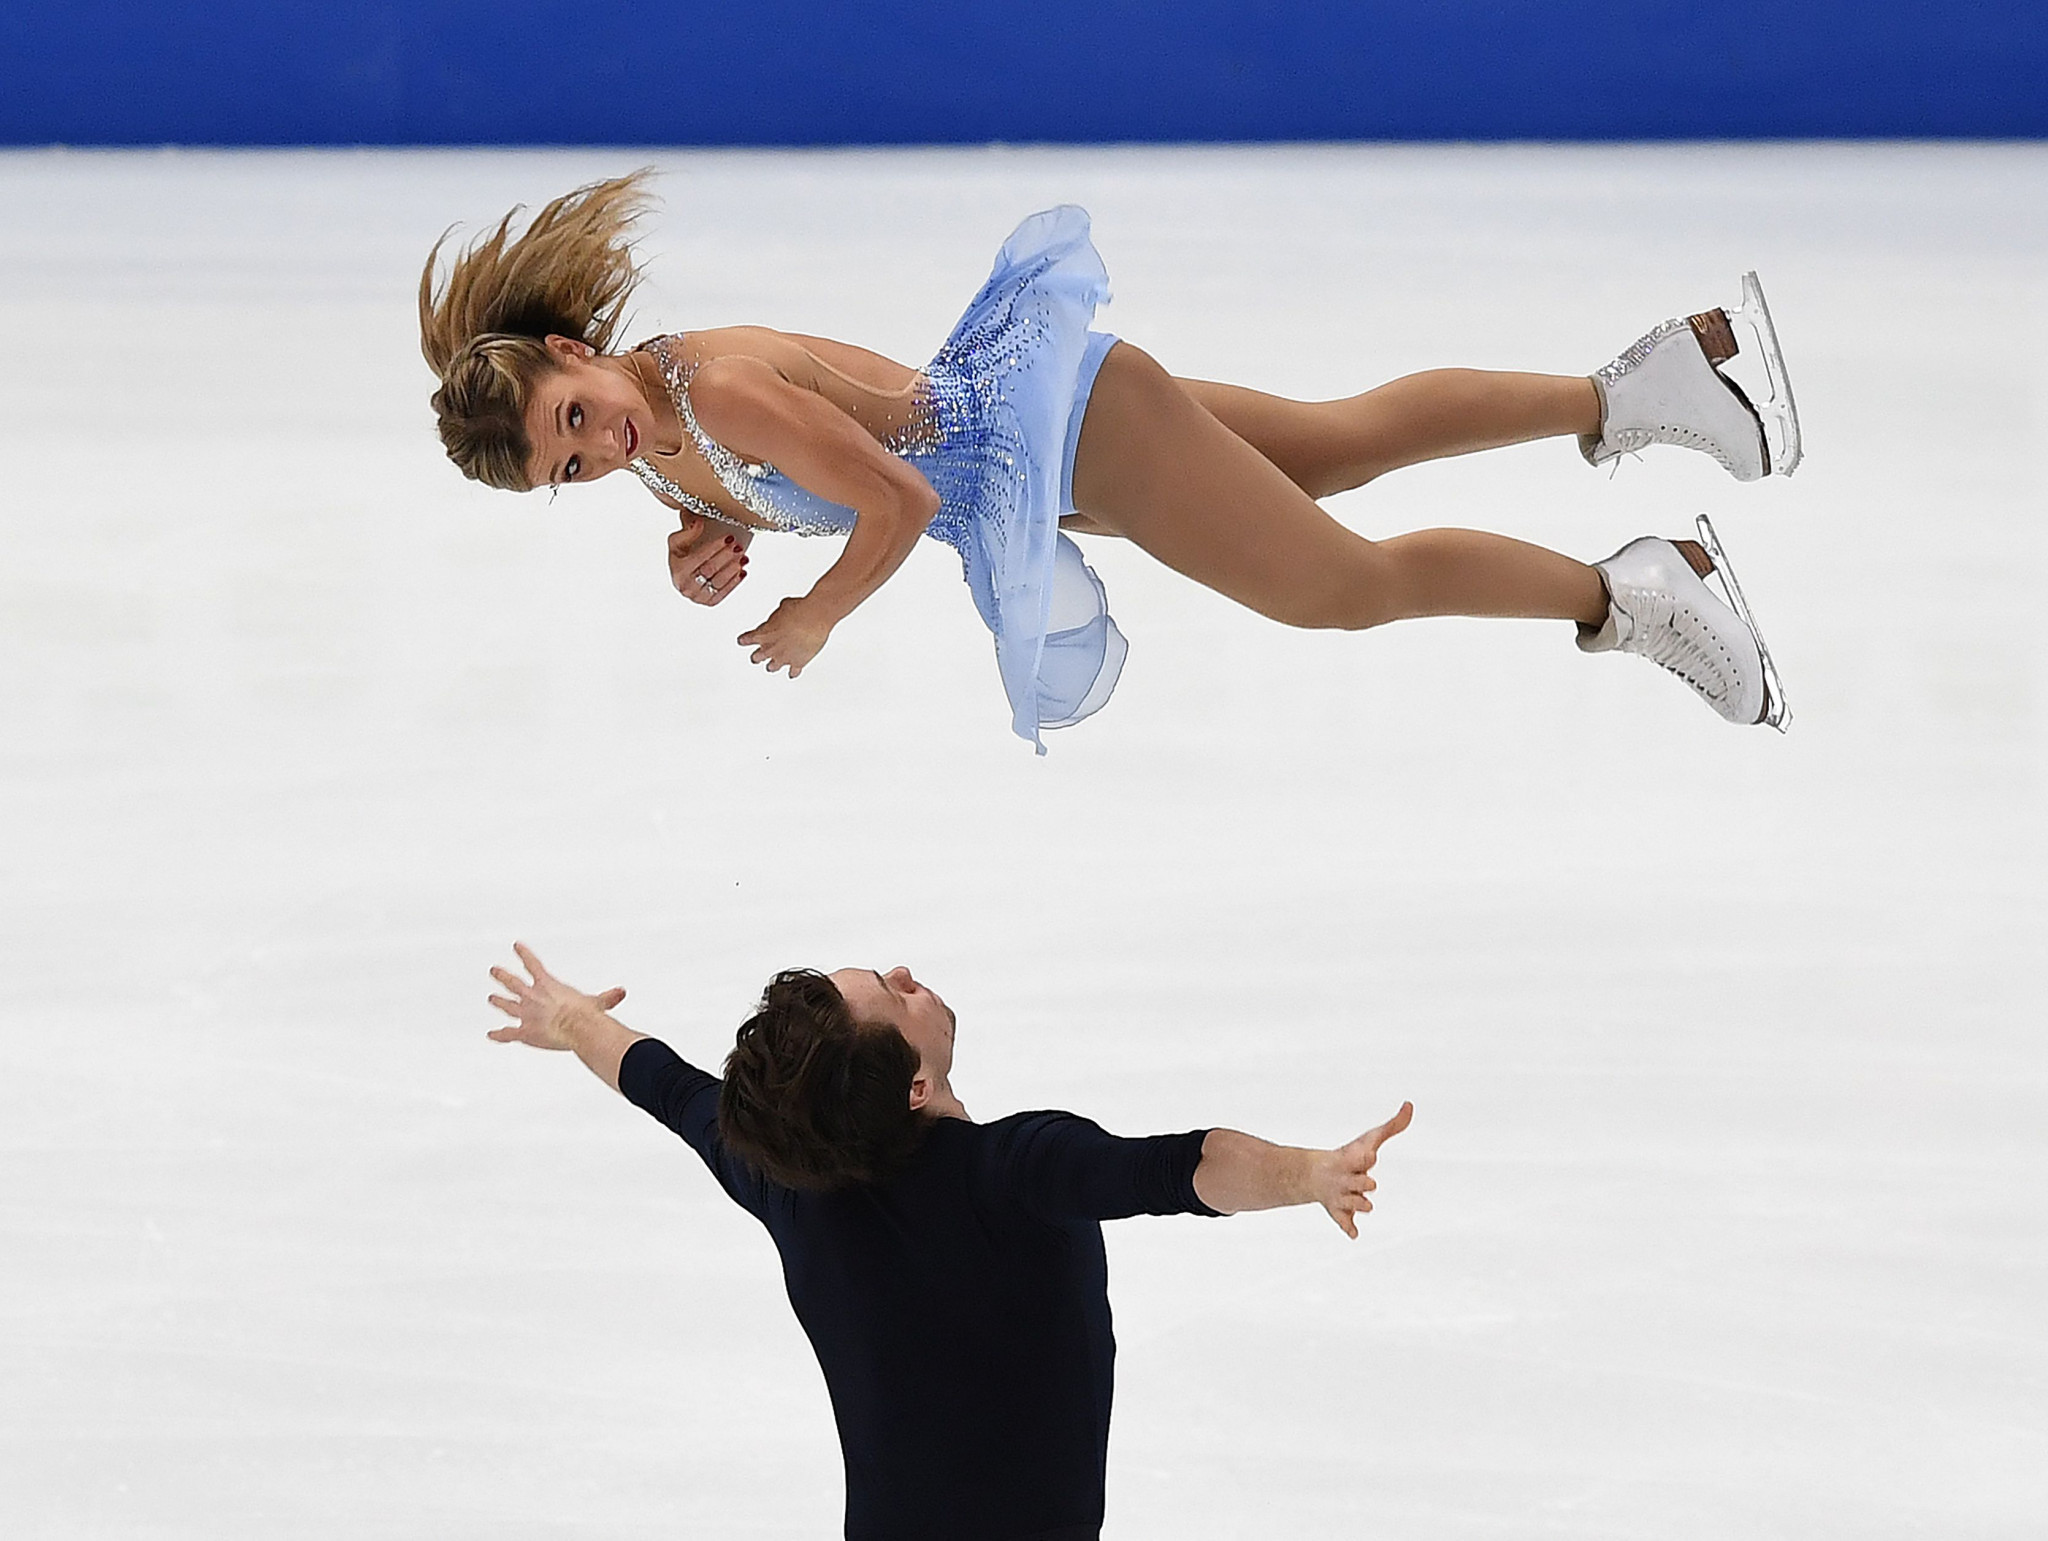 Canada's Kirsten Moore-Towers and Michael Marinaro lead the pairs competition at the halfway stage in Anaheim ©Getty Images